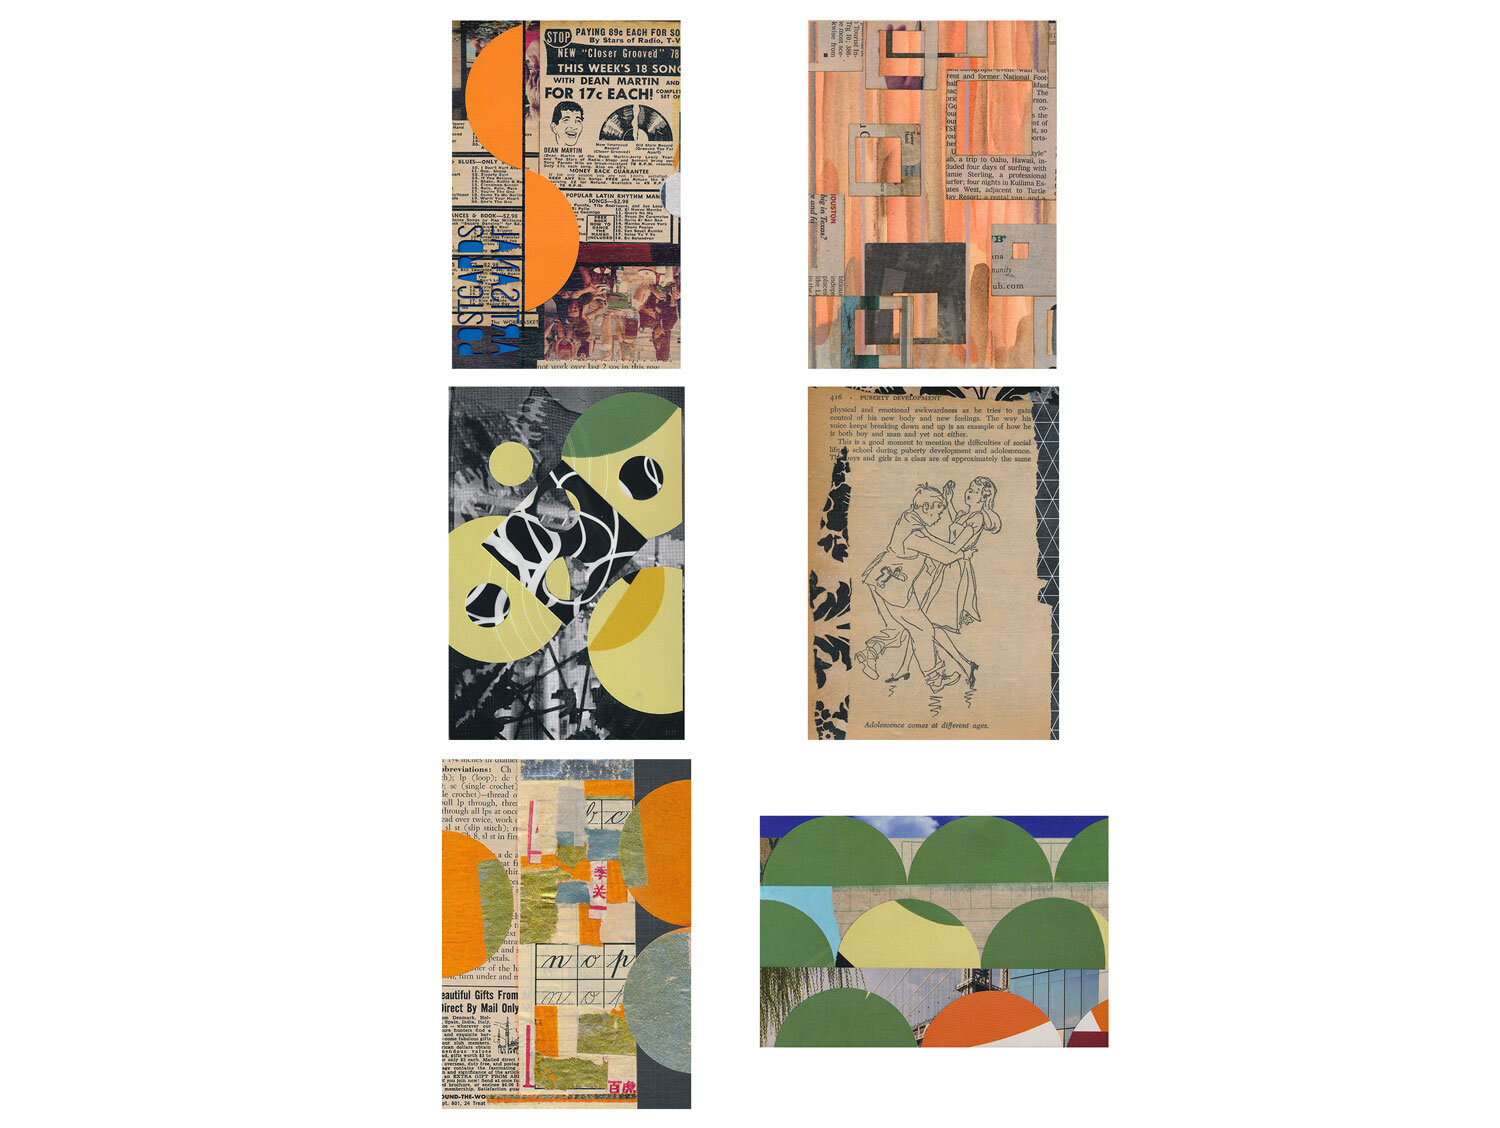 A completed mail art gift subscription, snail mailed small works of collage in postcard form to Aunt Linda from Ava, July - December 2016.  Artisanal Postcards Numbers 1,304 • 1,347 • 1,378 • 1,406 • 1,472 • 1,443